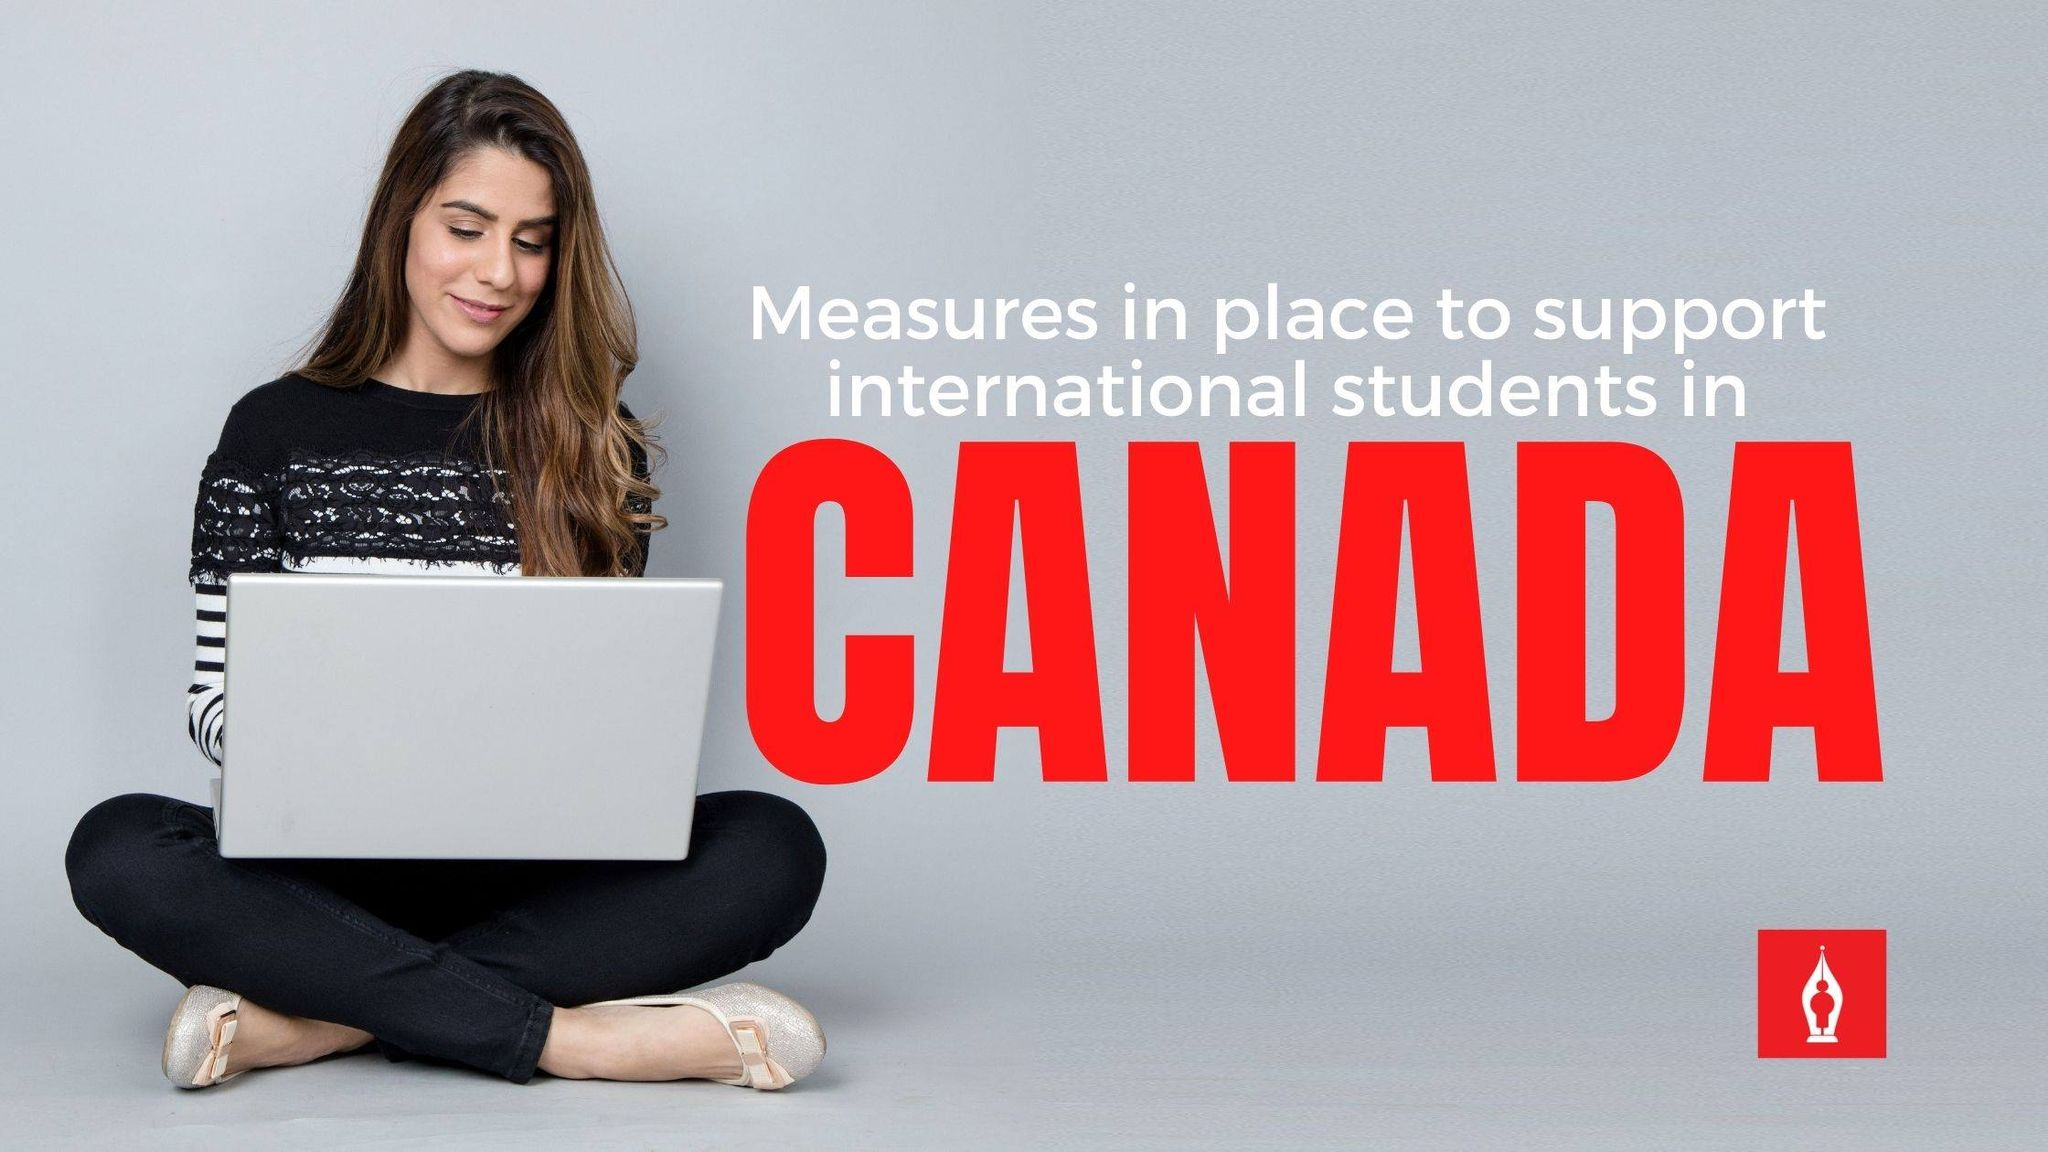 Measures in place to support international students in Canada